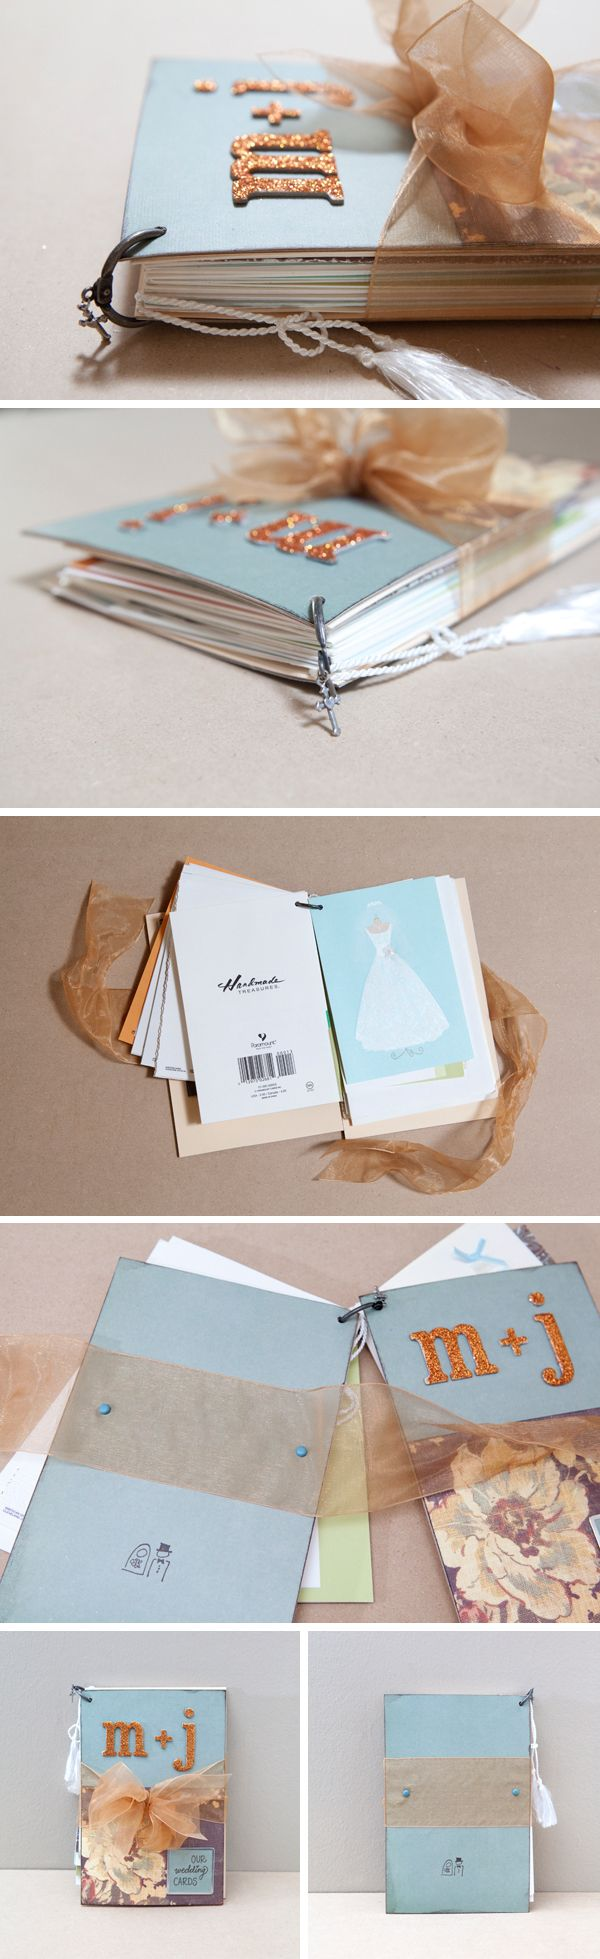 Ooh! I've GOT to do this with all our wedding and engagement cards!